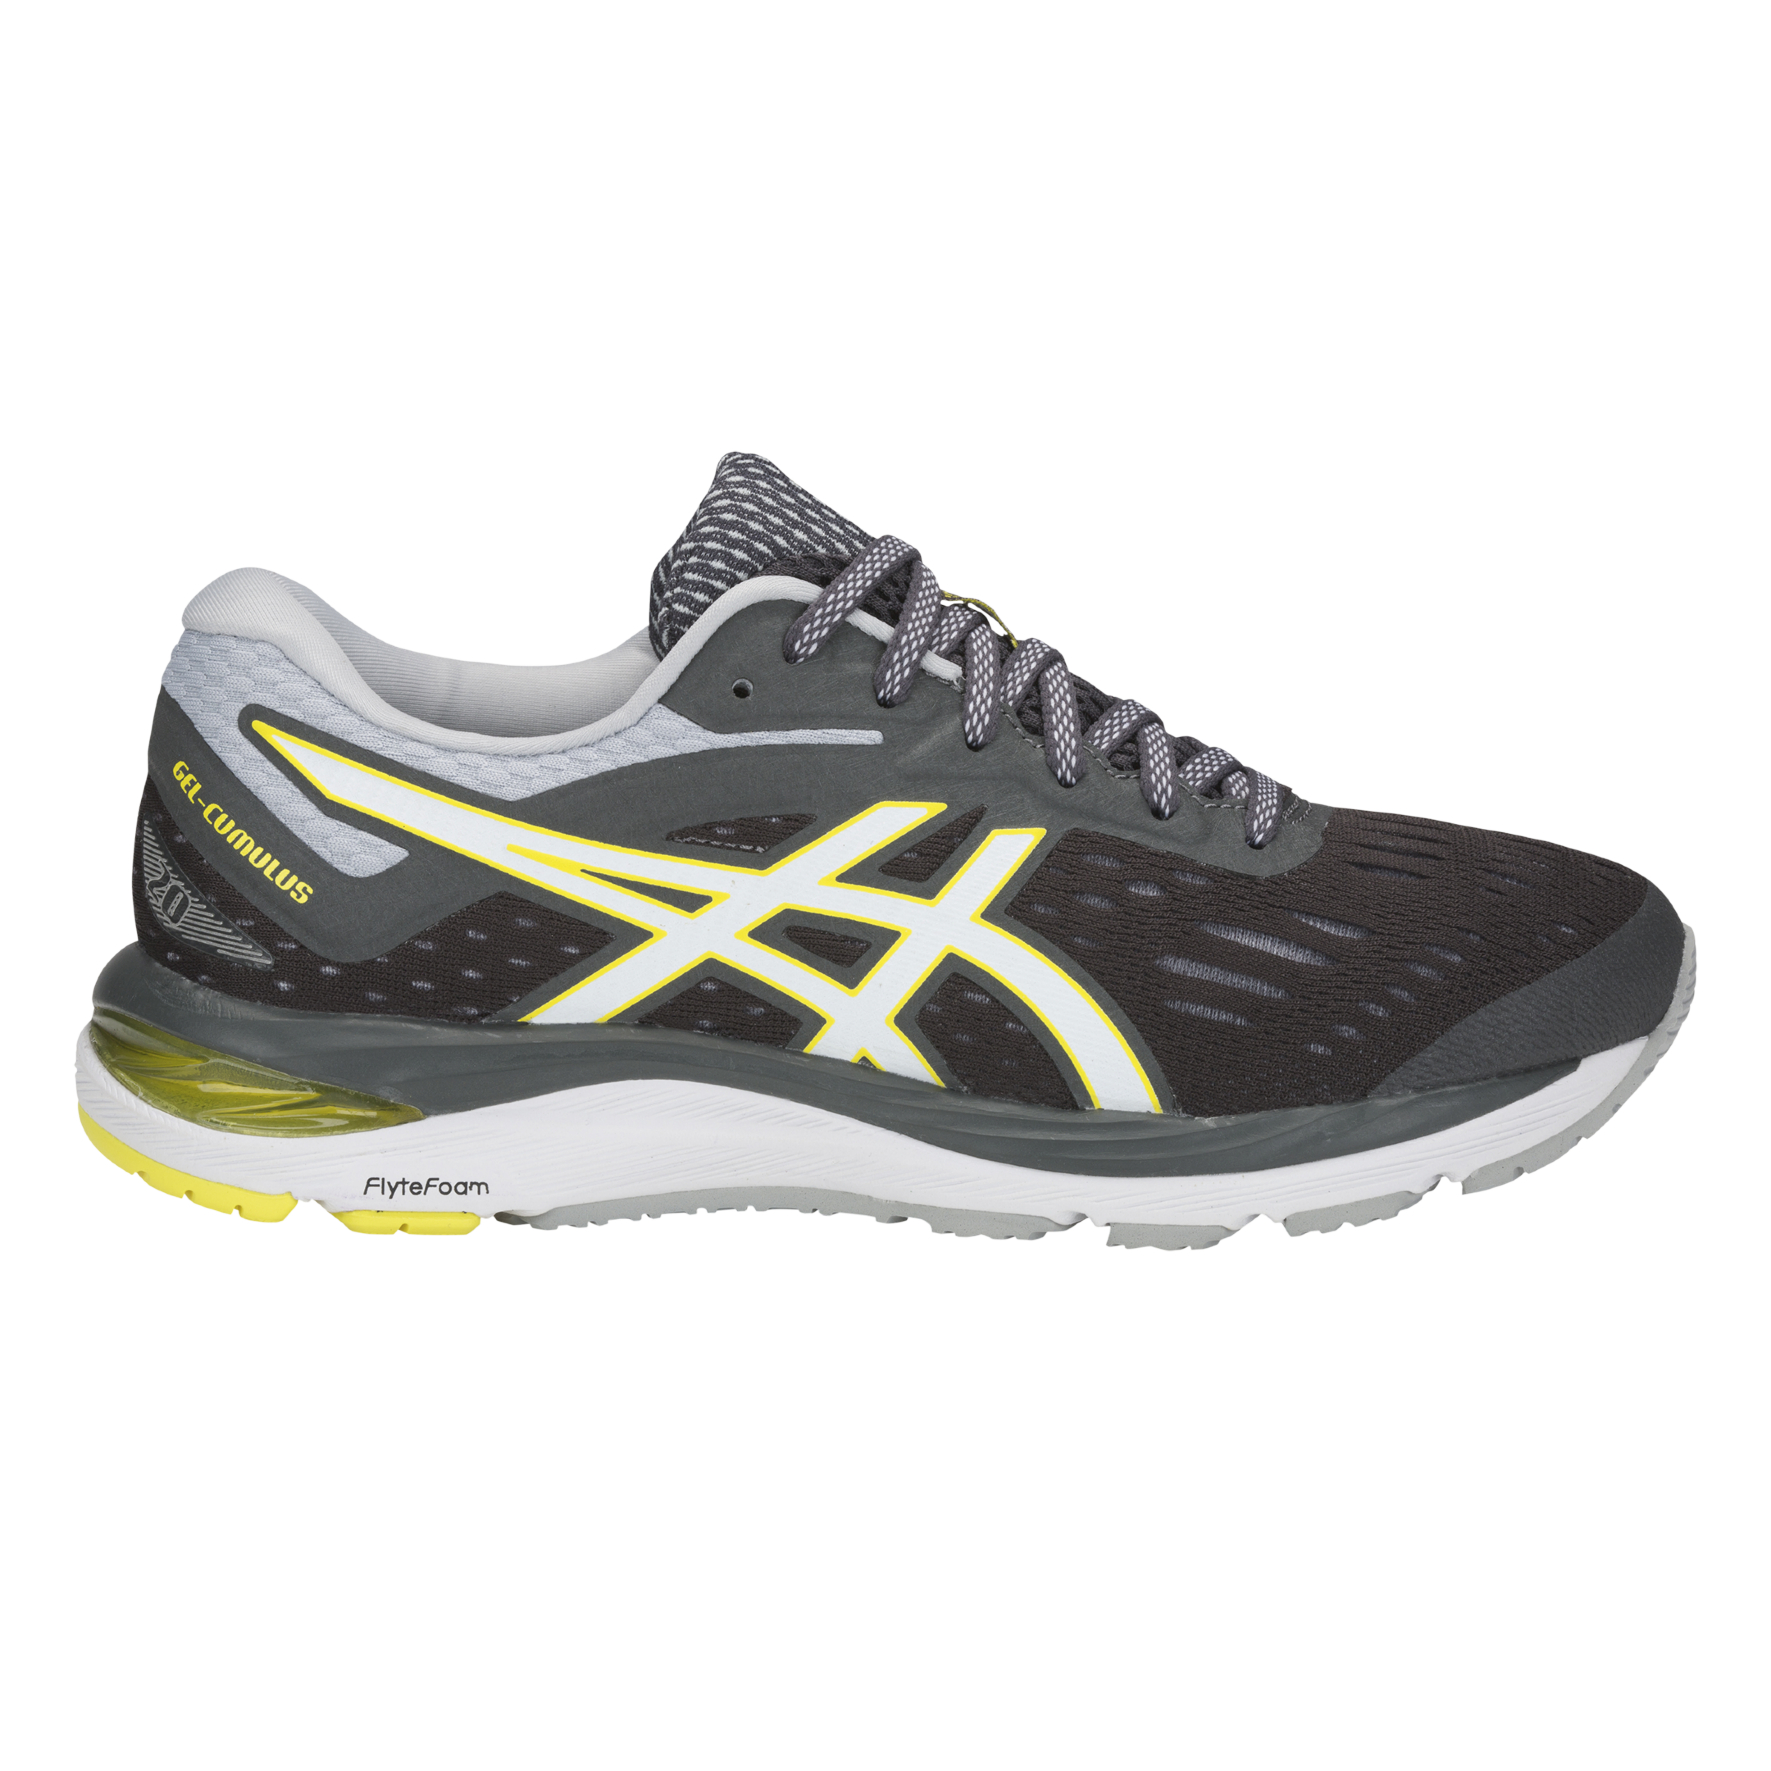 49ffebb62787 Wiggle | Asics Women's Gel Cumulus 20 Shoes | Running Shoes